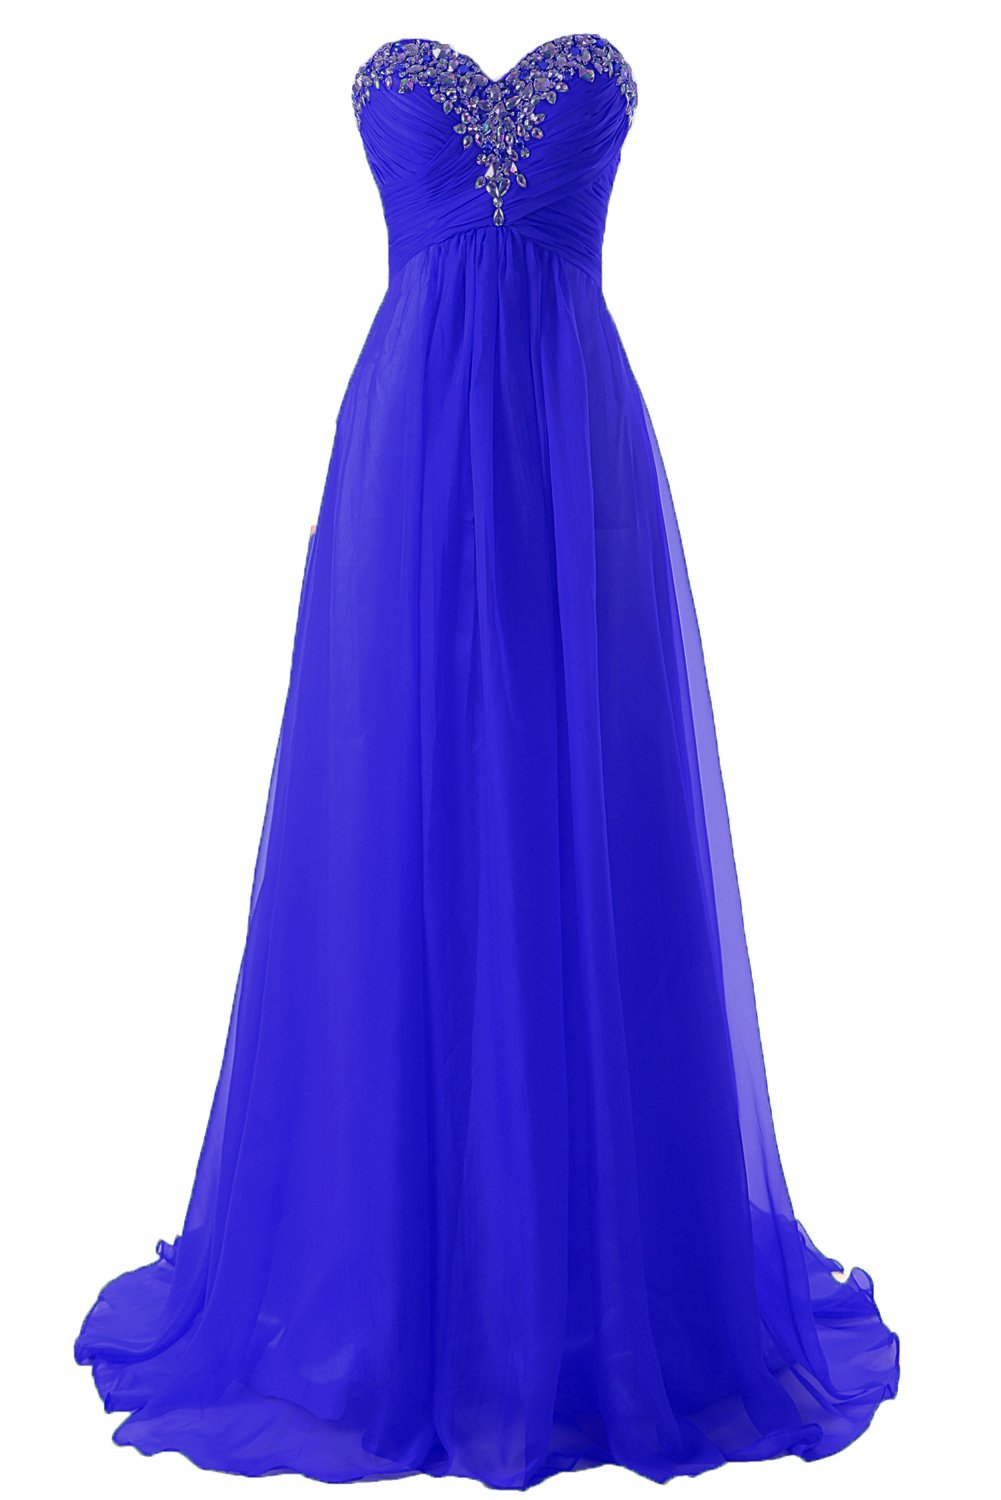 Available at Amazon: JAEDEN Prom Dress Bridesmaid Dresses Long Prom Gowns Chiffon Formal Evening Gown A line Evening Dress